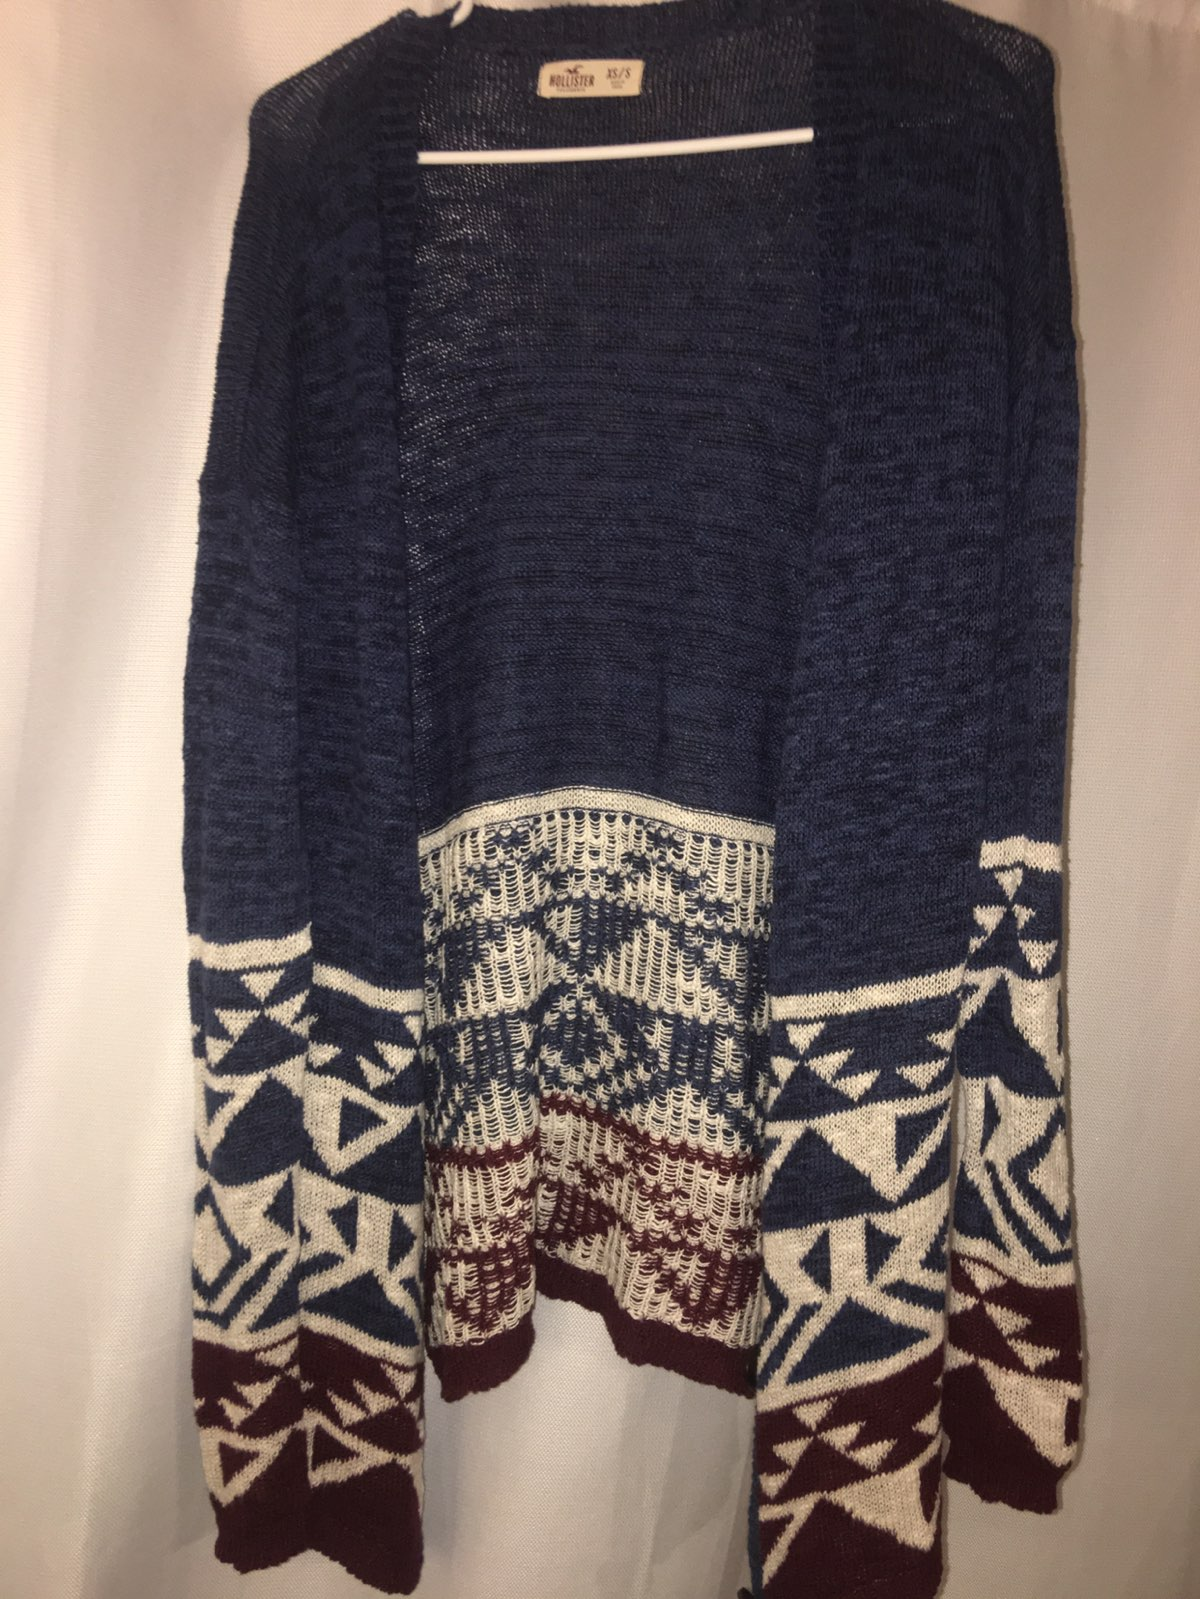 CUTE Hollister Co. Sweater - Mercari: BUY & SELL THINGS YOU LOVE